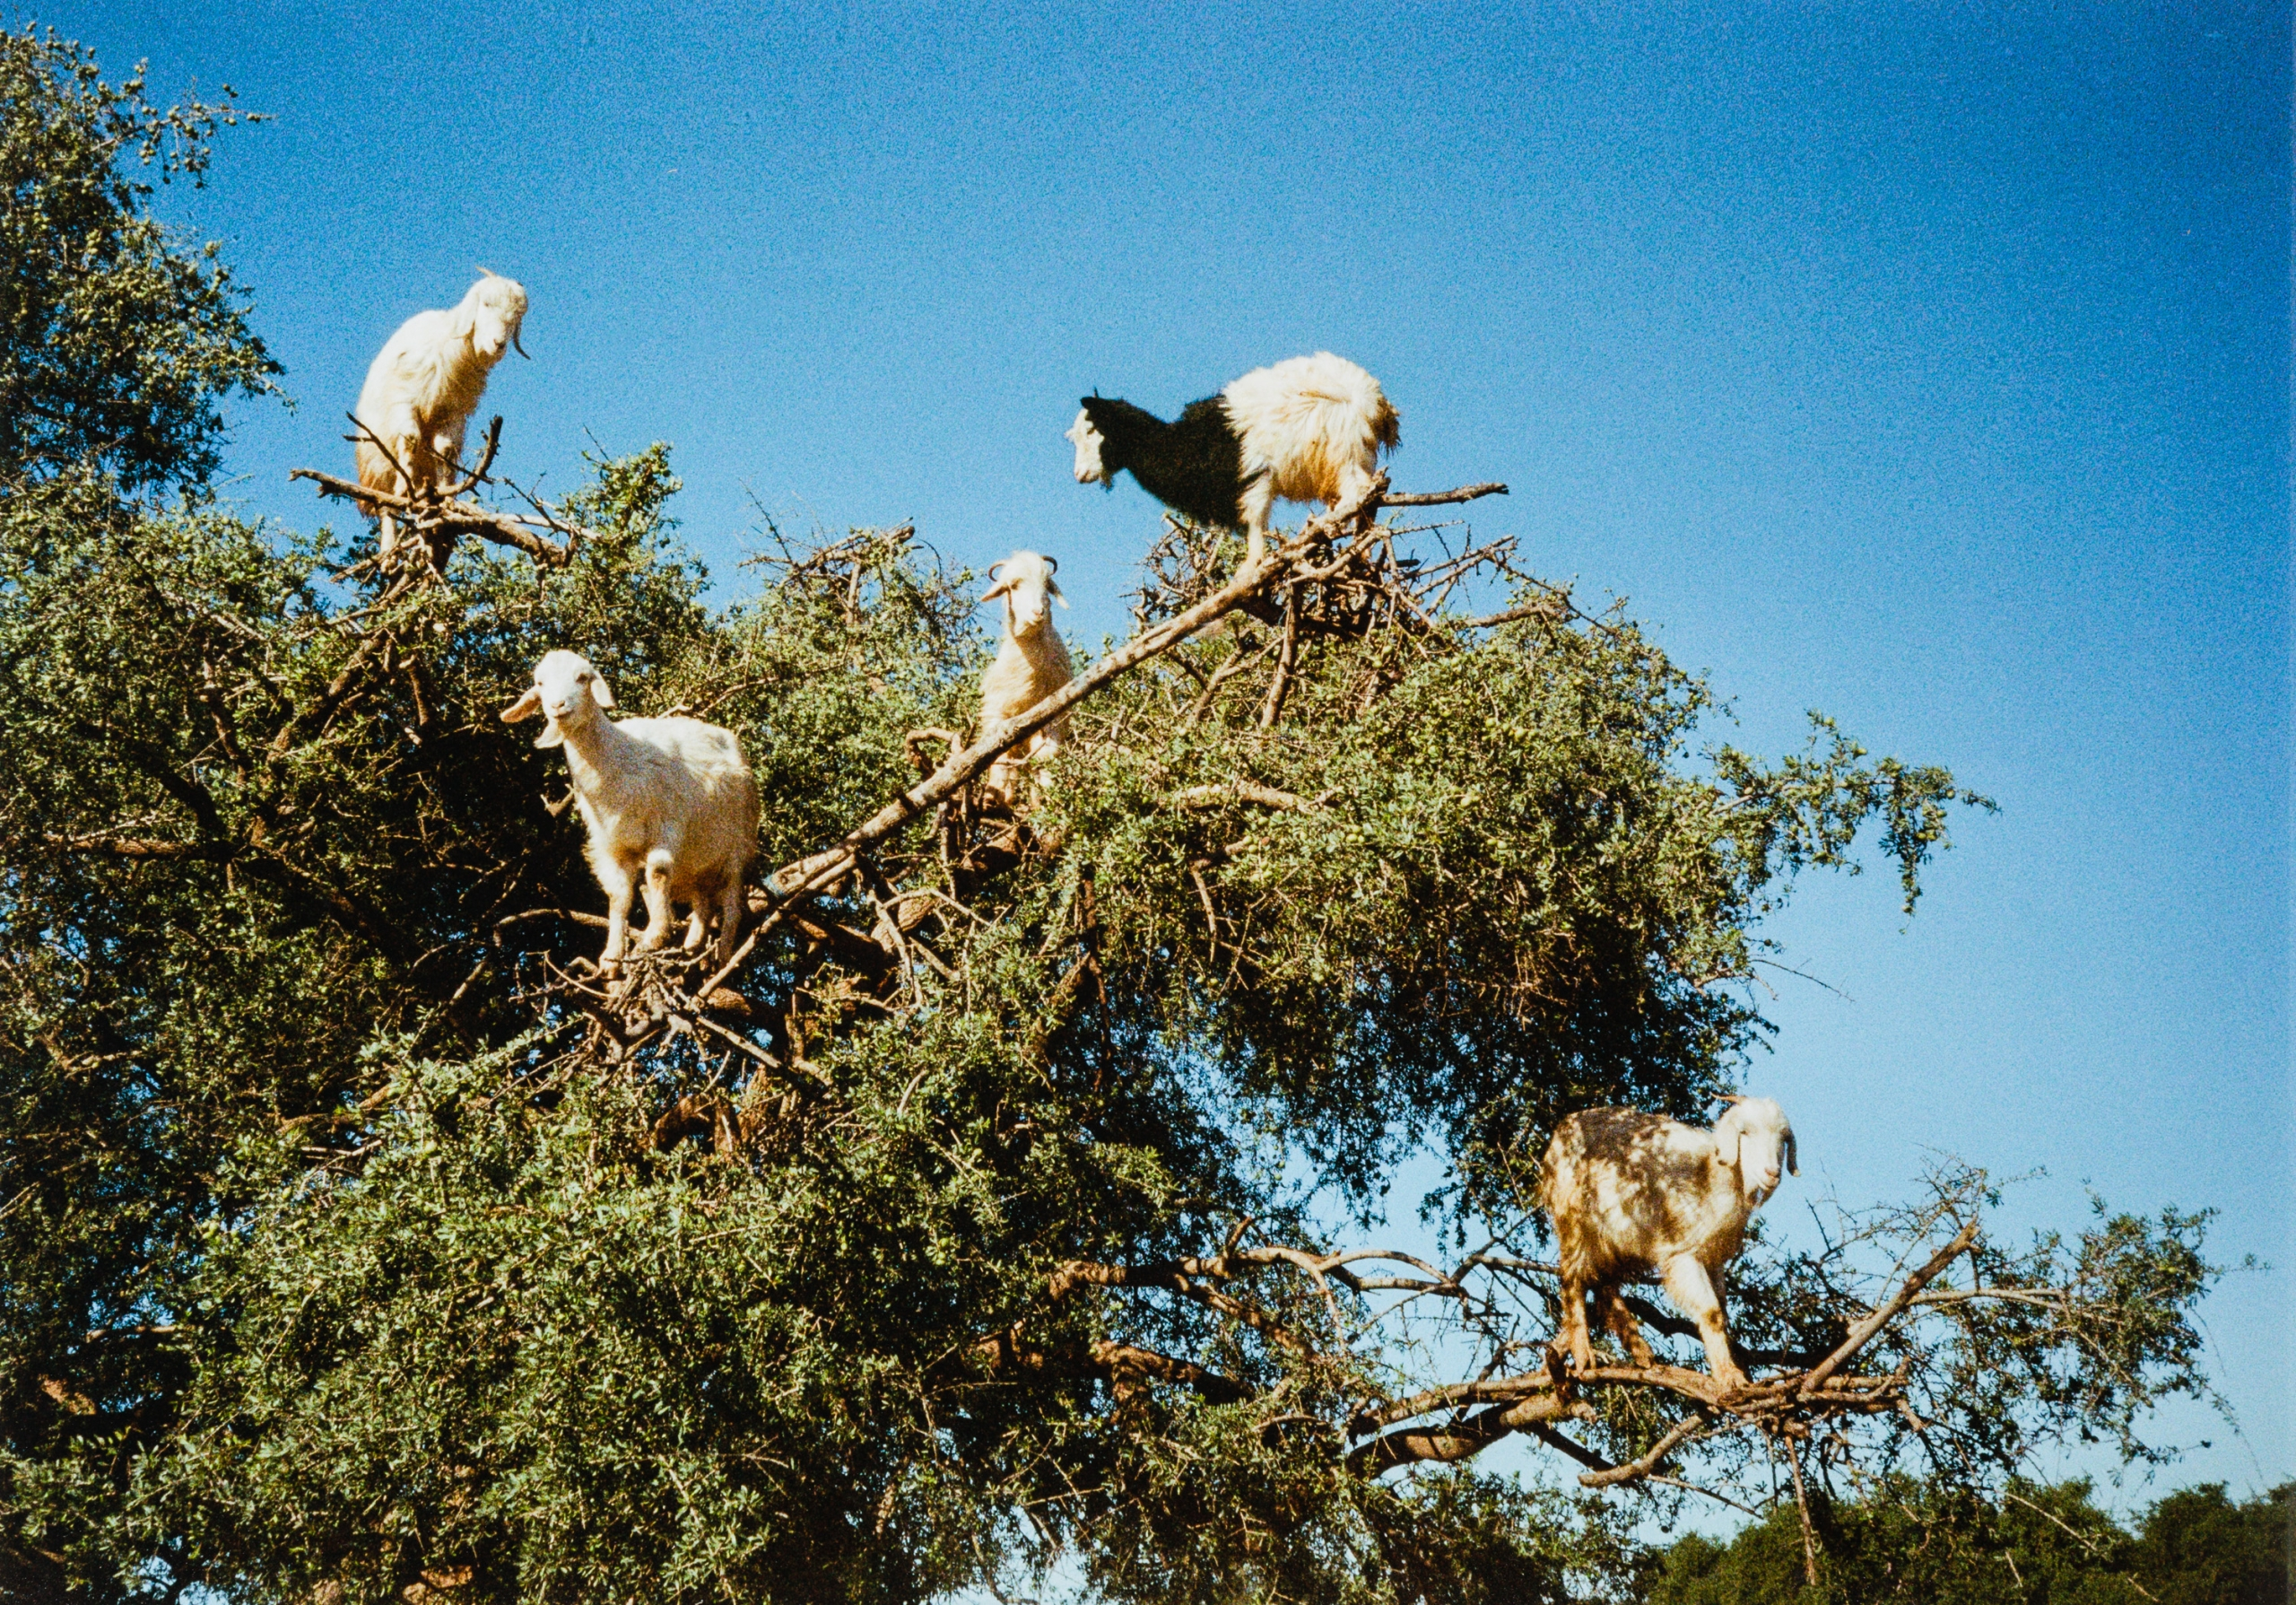 Anna Jermolaewa, About Goats and Women in Oil Production